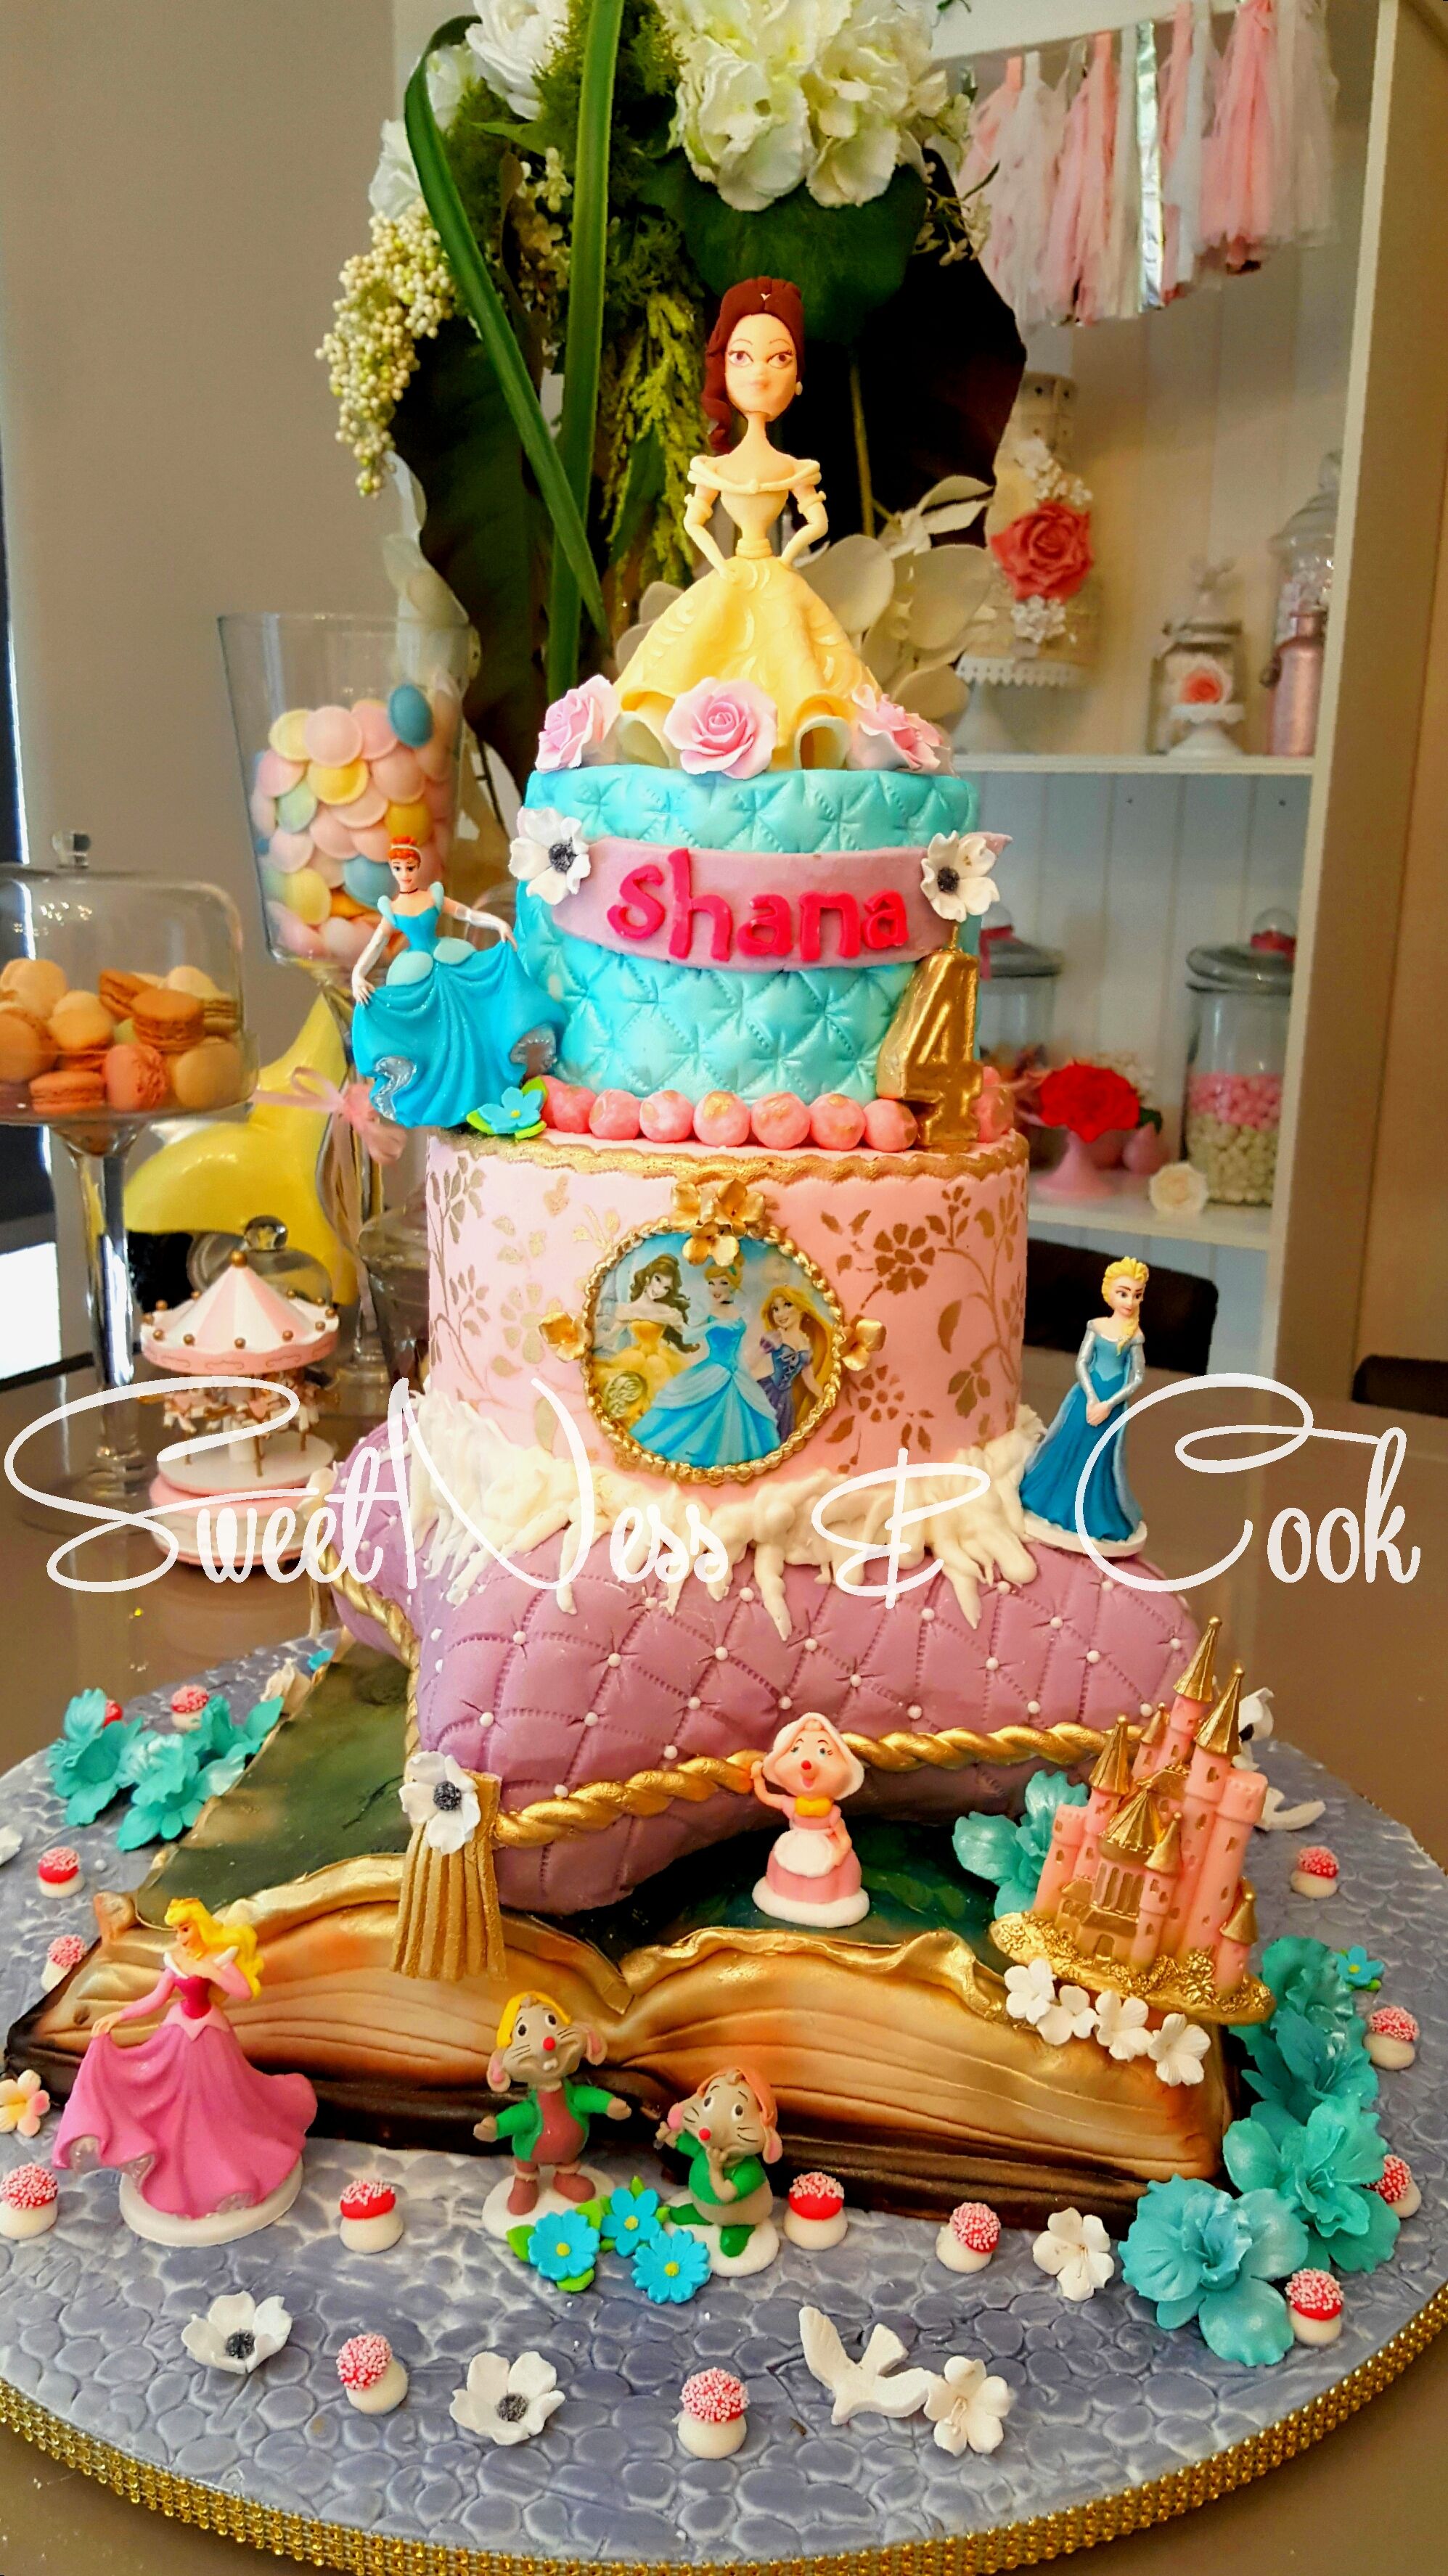 Cake Design Princesses Disney